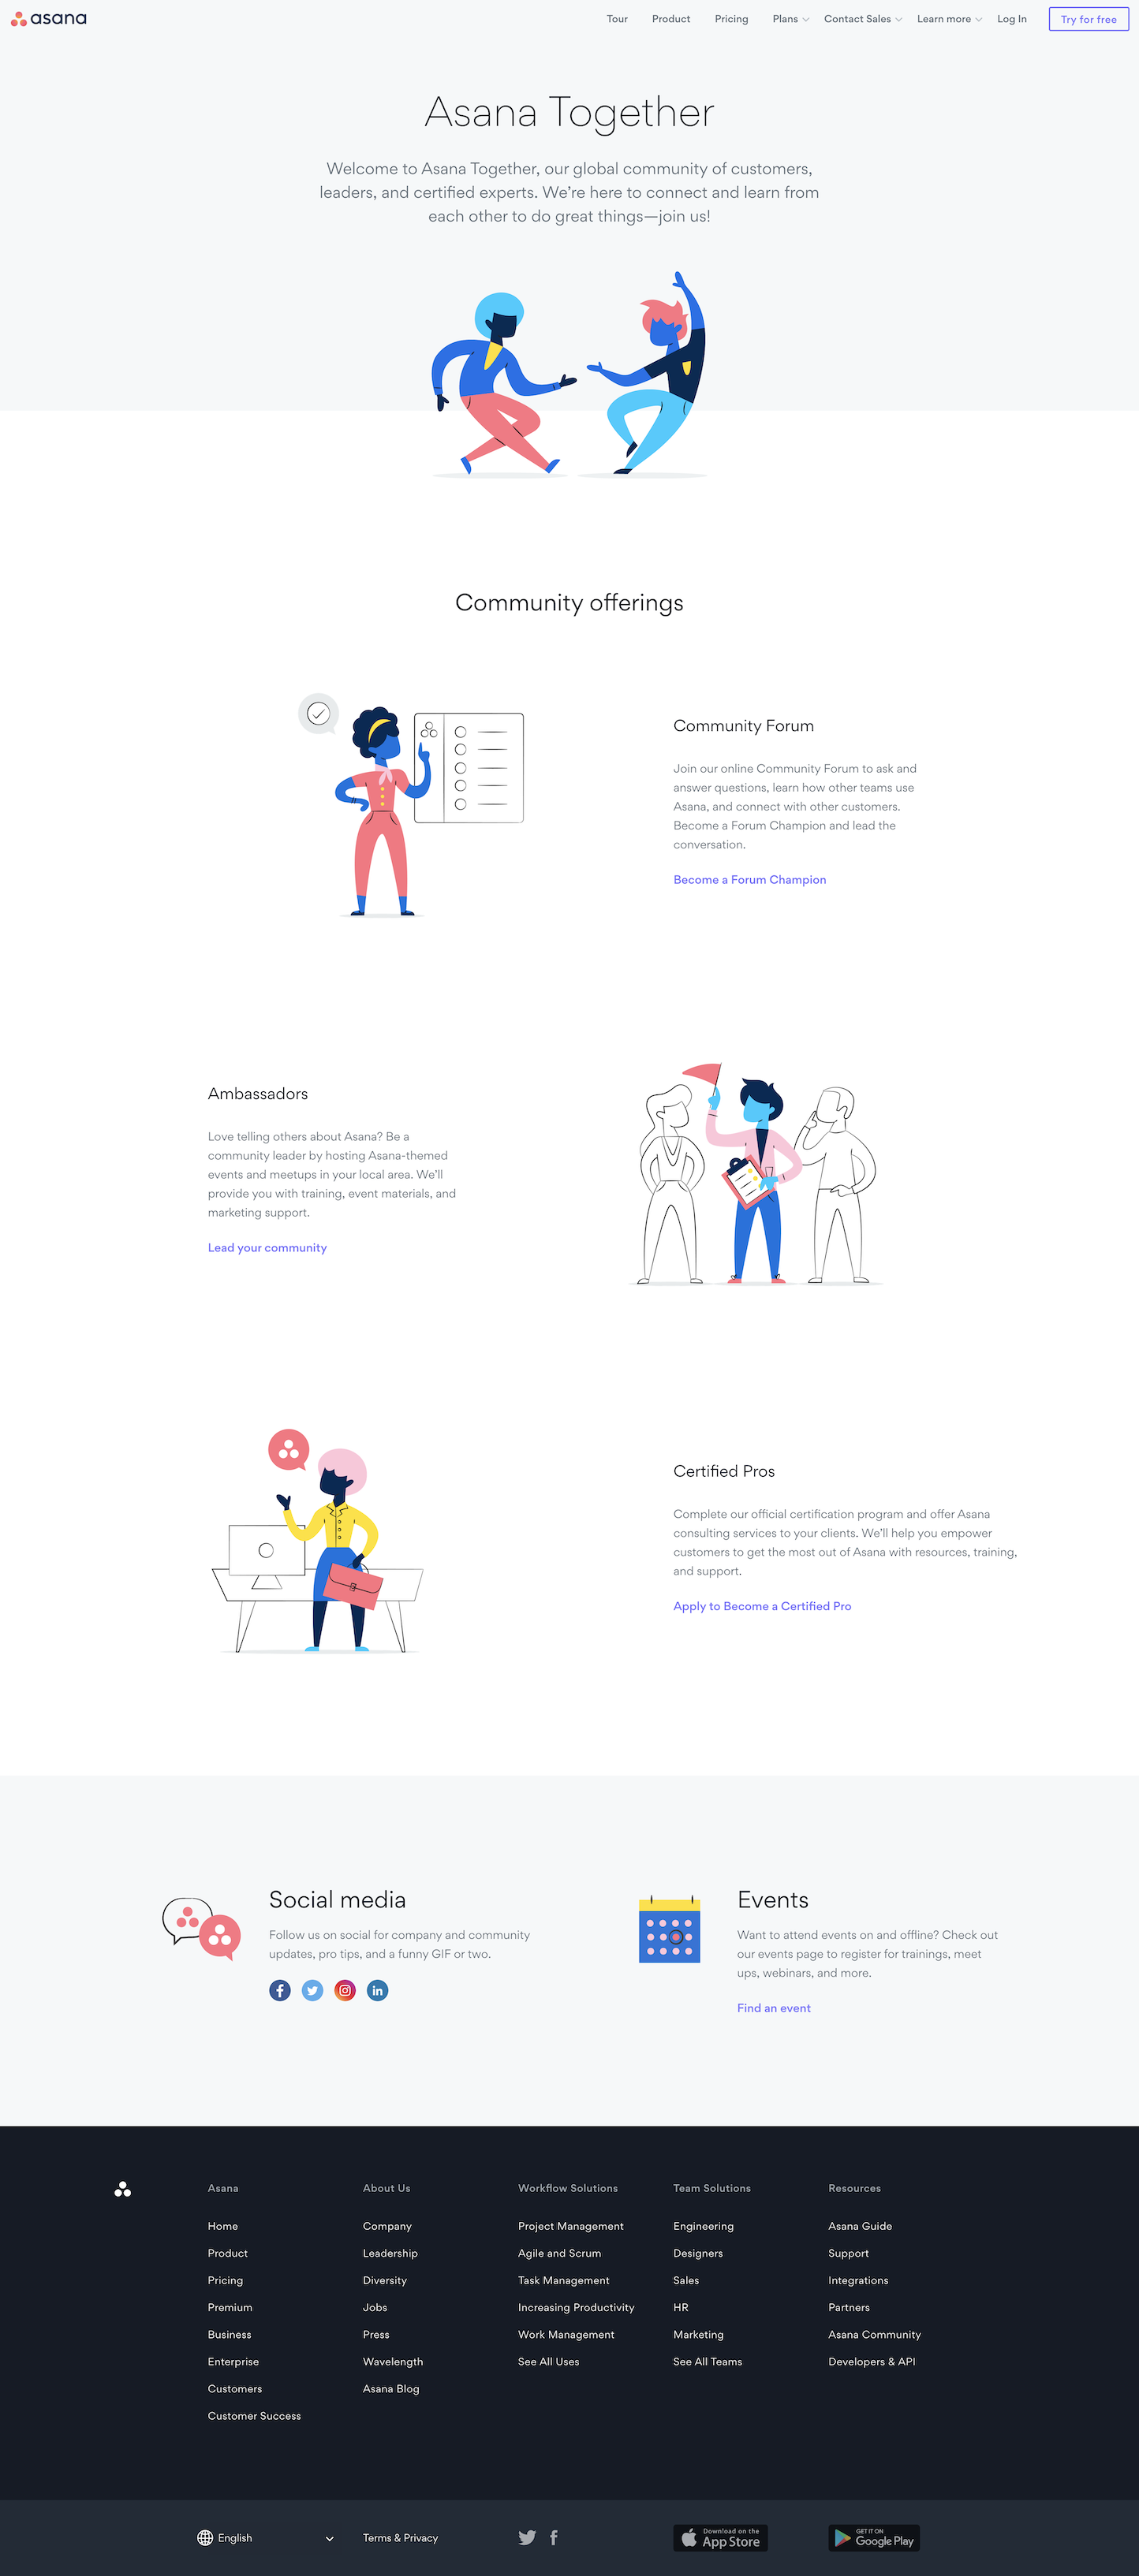 Screenshot of the Community page from the Asana website.